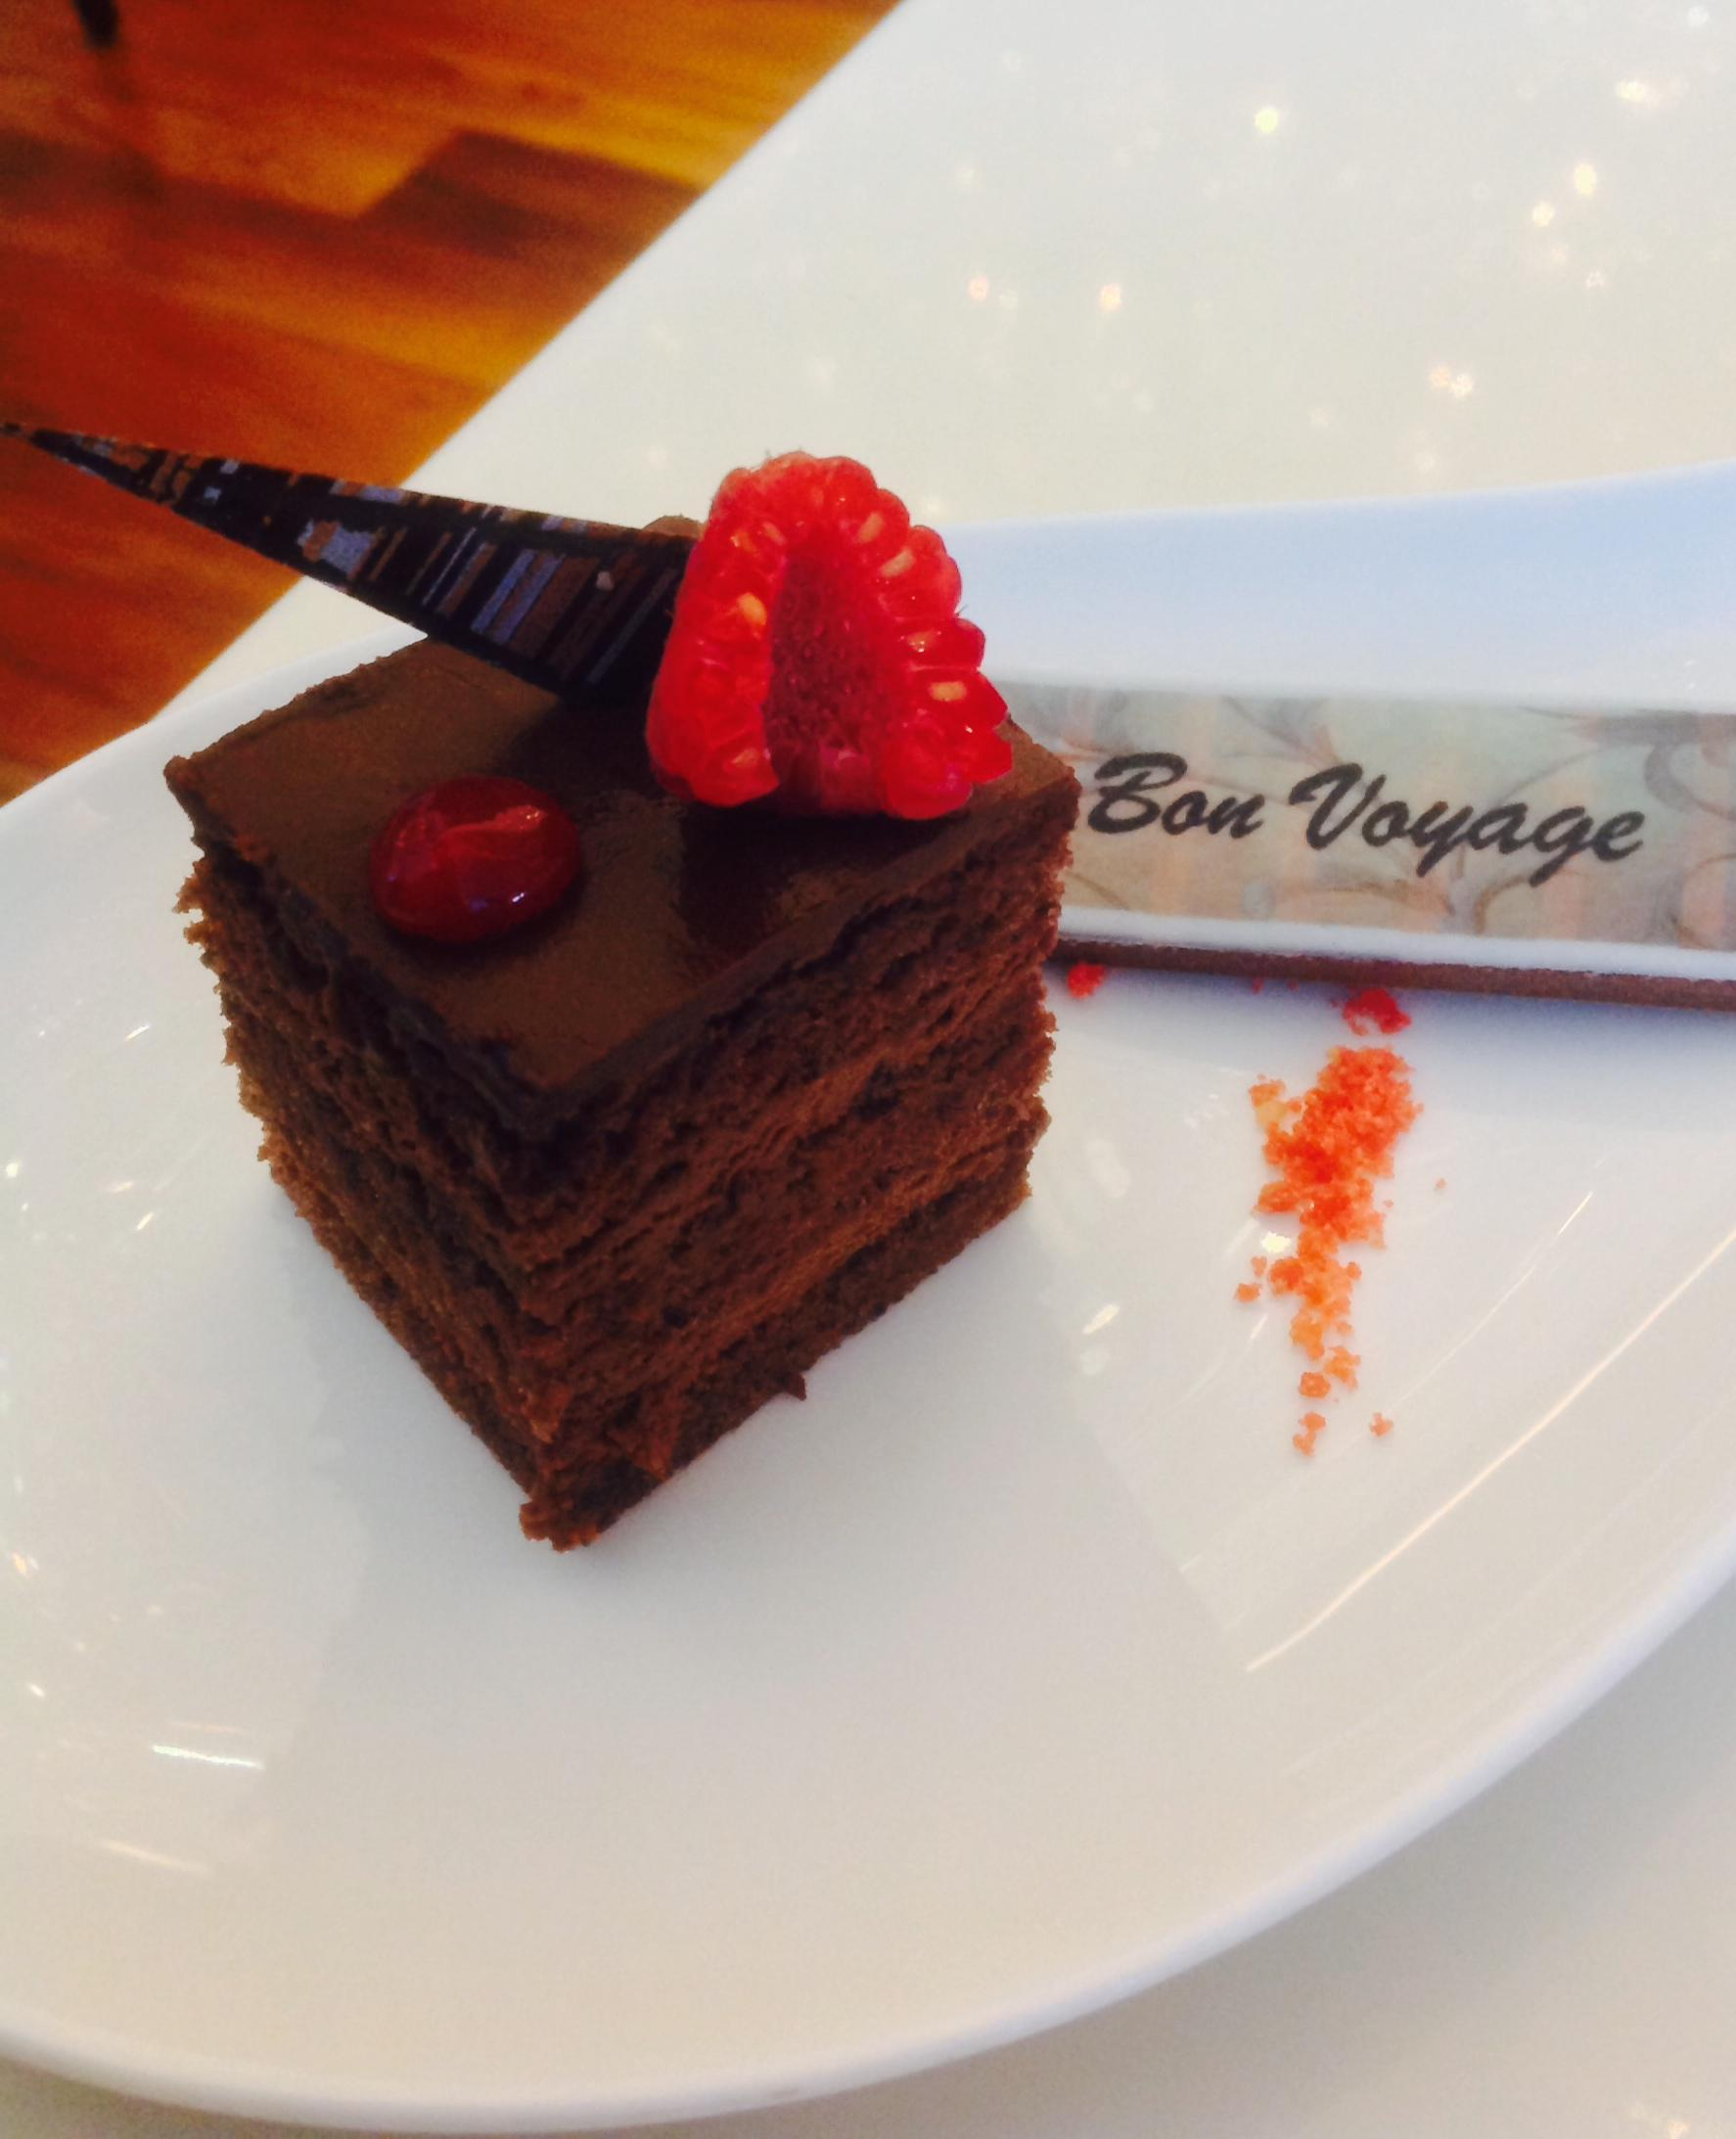 """Our """"bon voyage"""" mousse cake delivered to us at 8am- finished by 8.01am- it would have been rude not to!"""